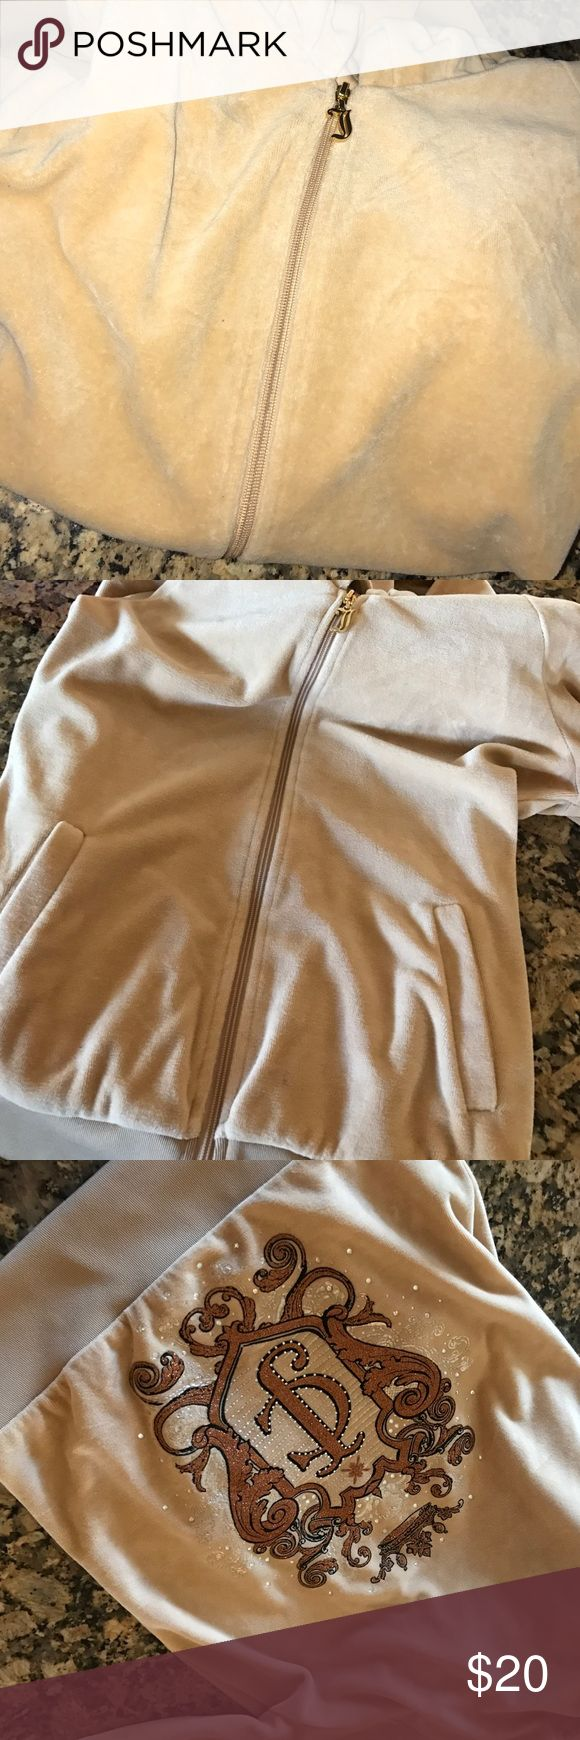 Juicy Couture Beige velour tracksuit jacket Amazing embroidery with glitter and rhinestones Juicy Couture Tops Sweatshirts & Hoodies